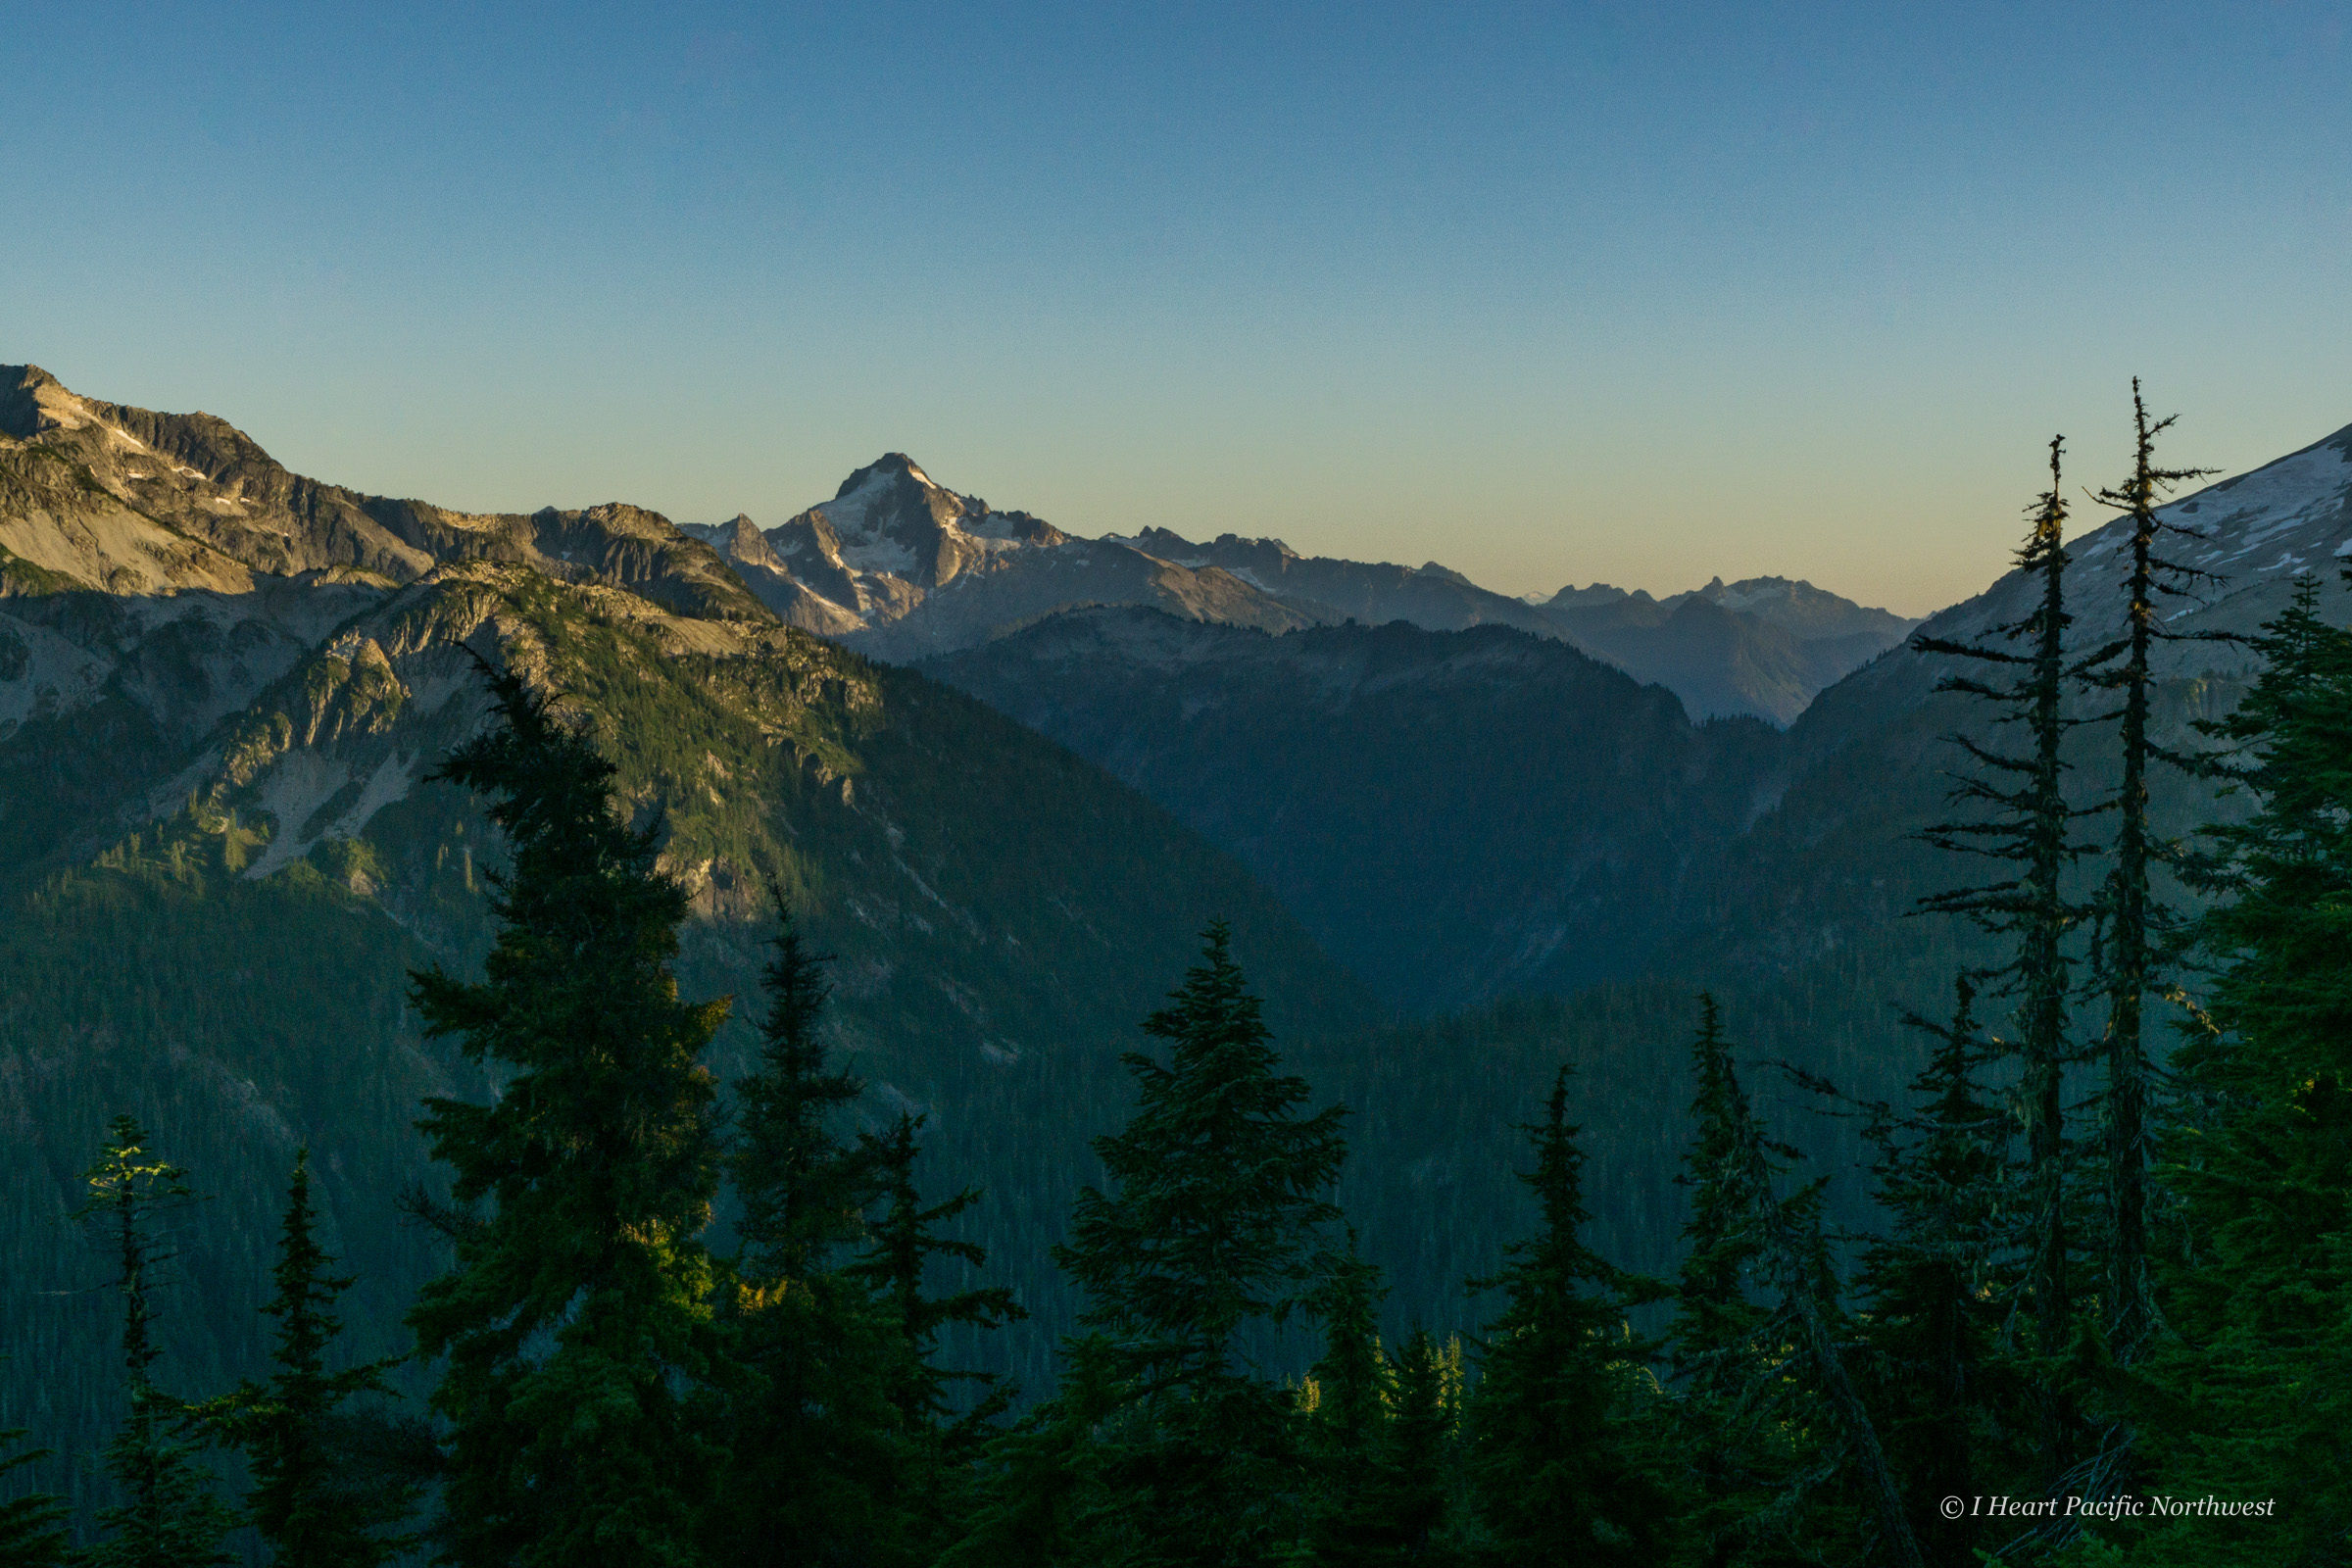 North Cascades: Copper Ridge backpacking trip